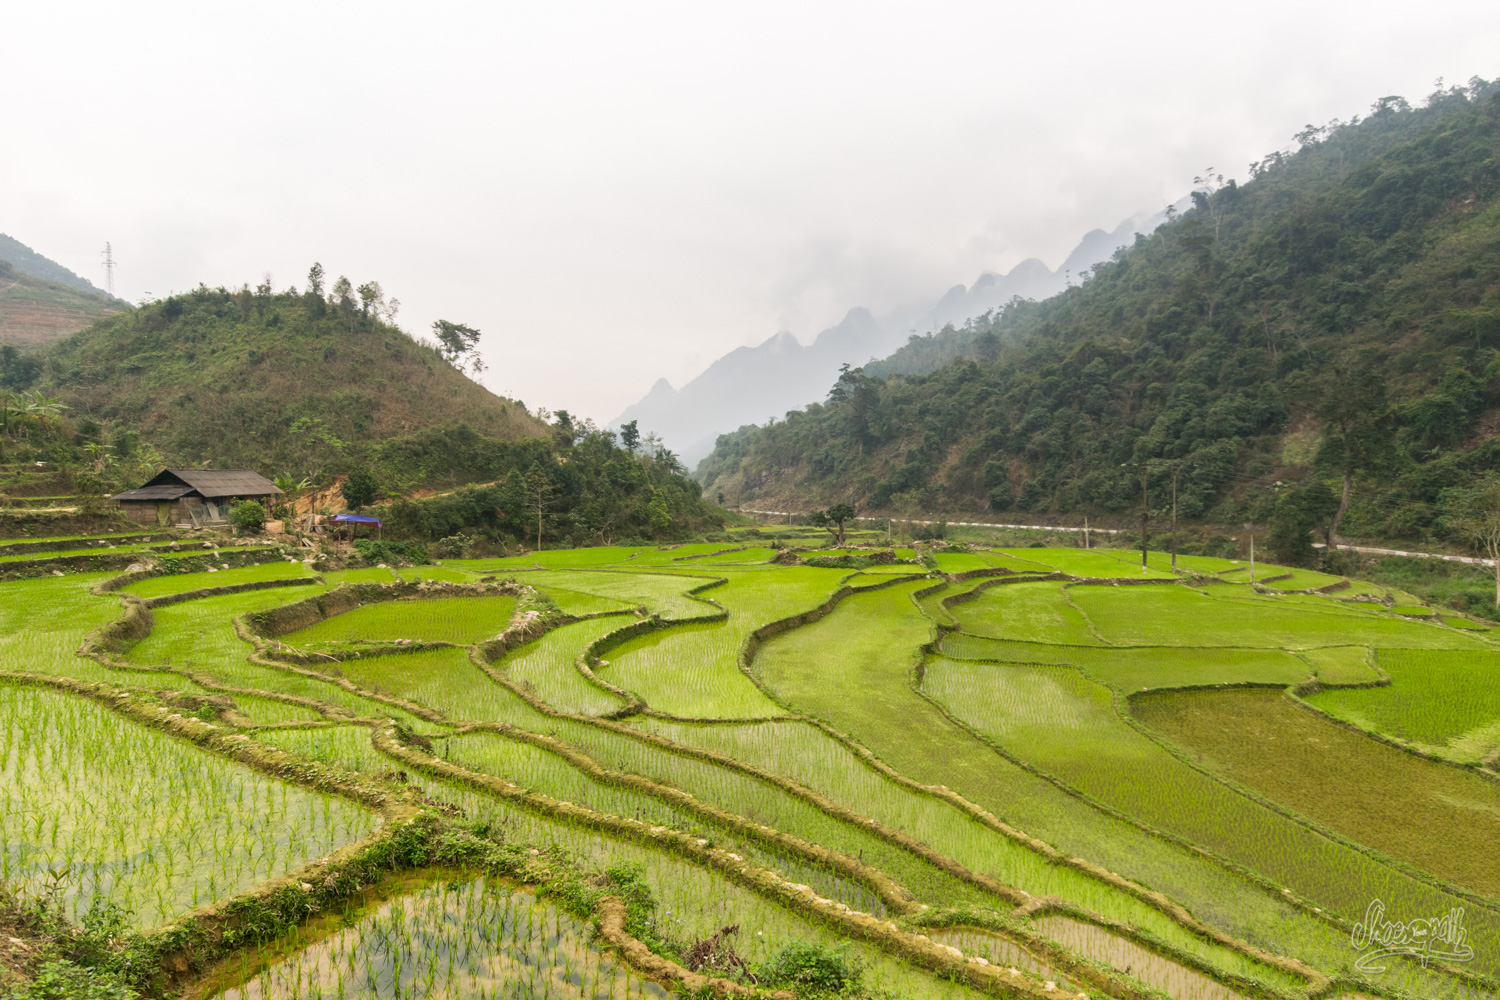 Ricefields in Ha Giang region. Not too bad, eh ?